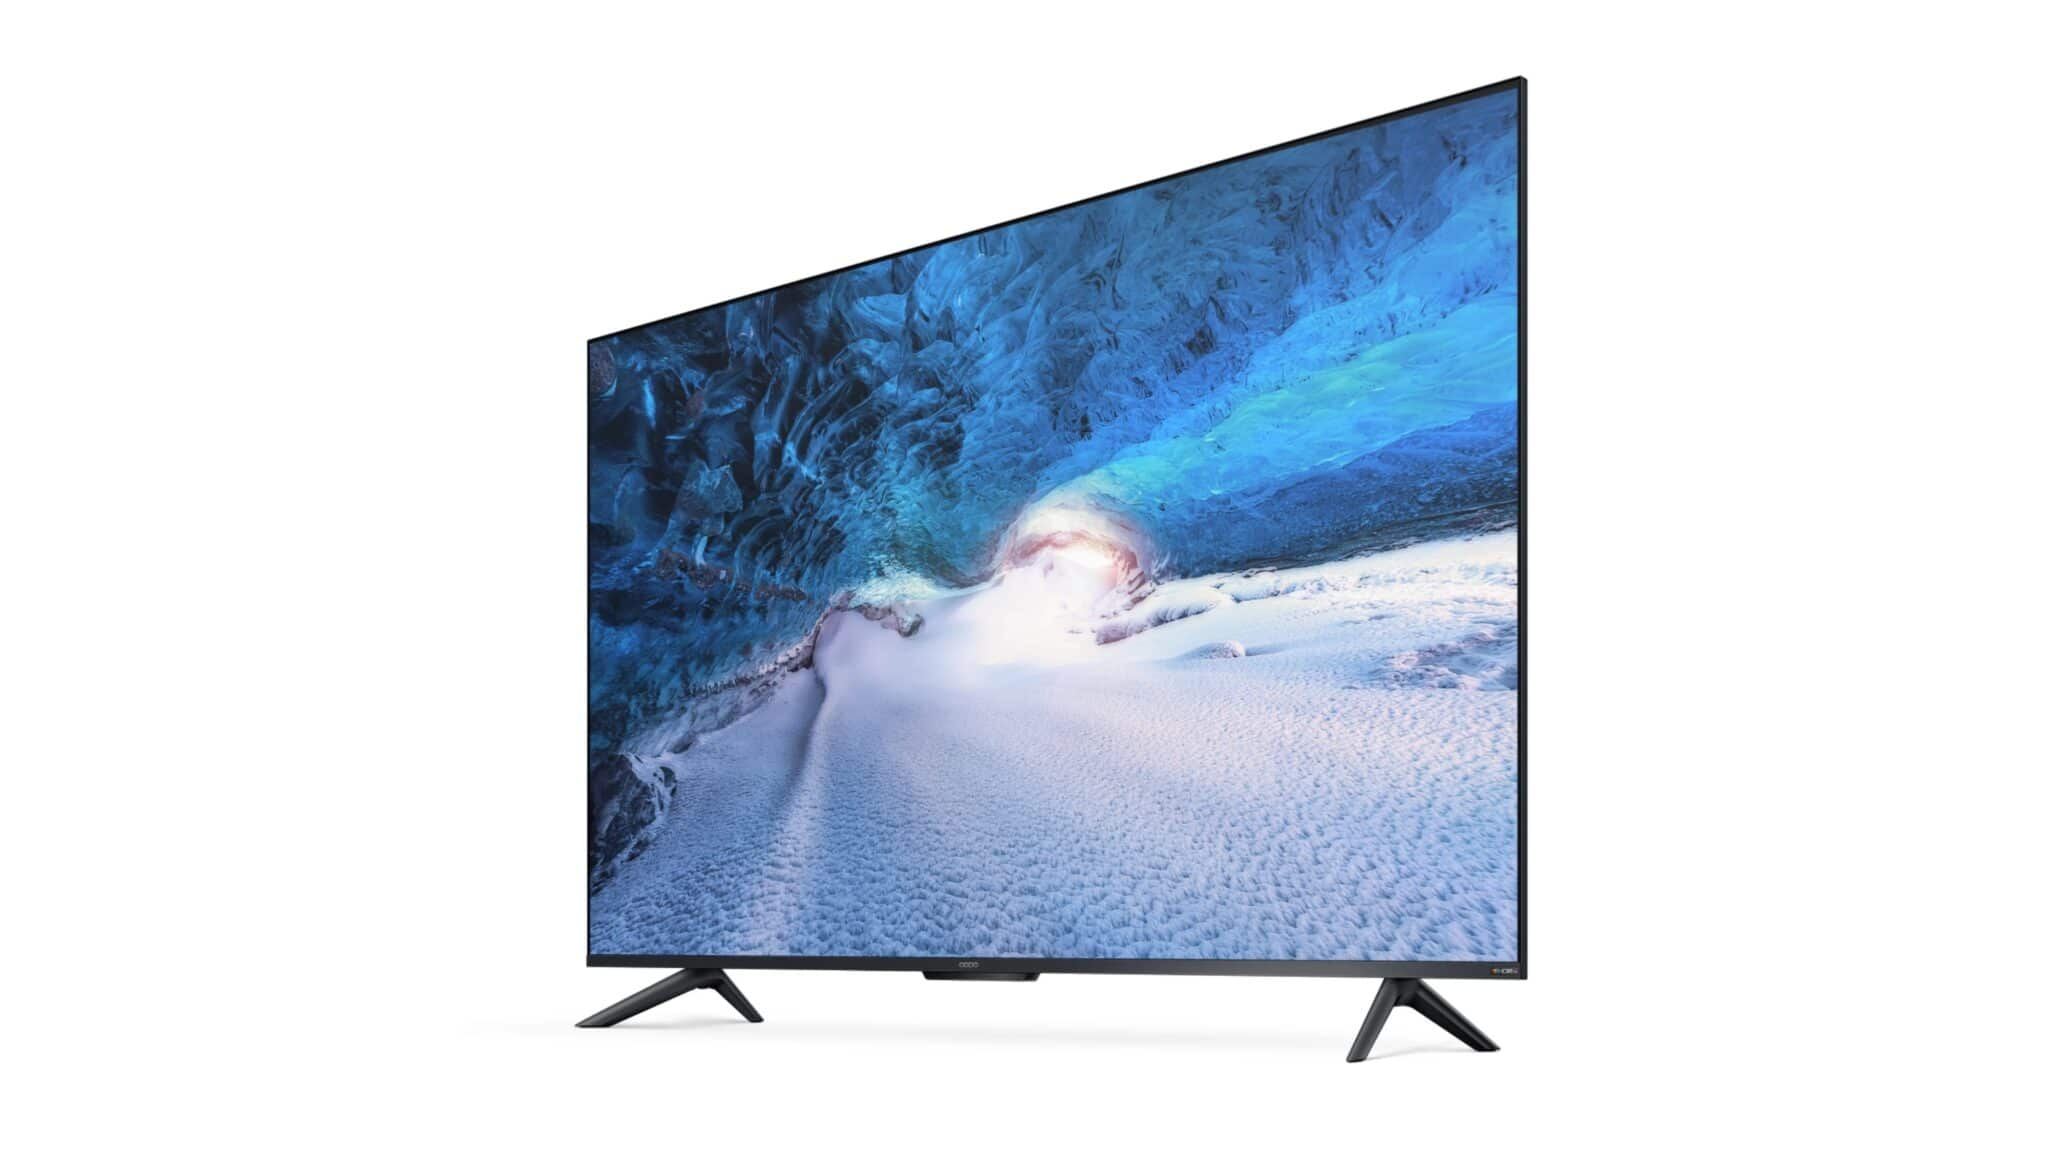 Oppo Launches Affordable K9 4K TV Series With DLED Panels